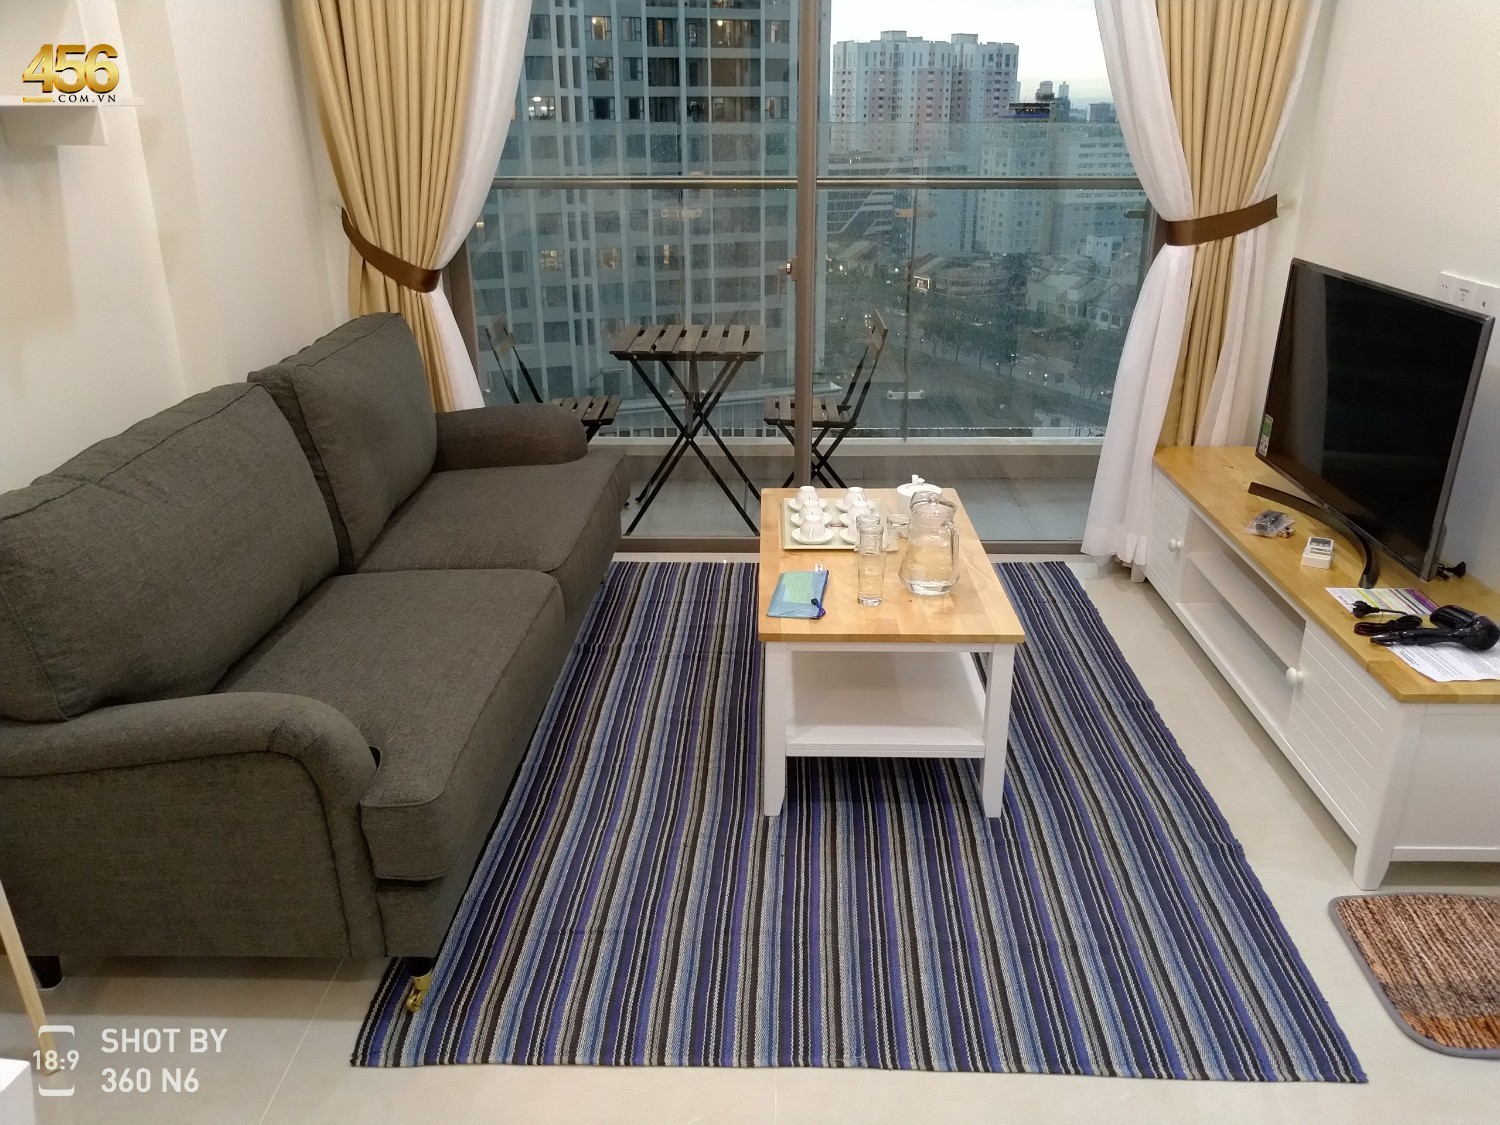 2 Bedrooms Millenium apartment for rent fully furniture